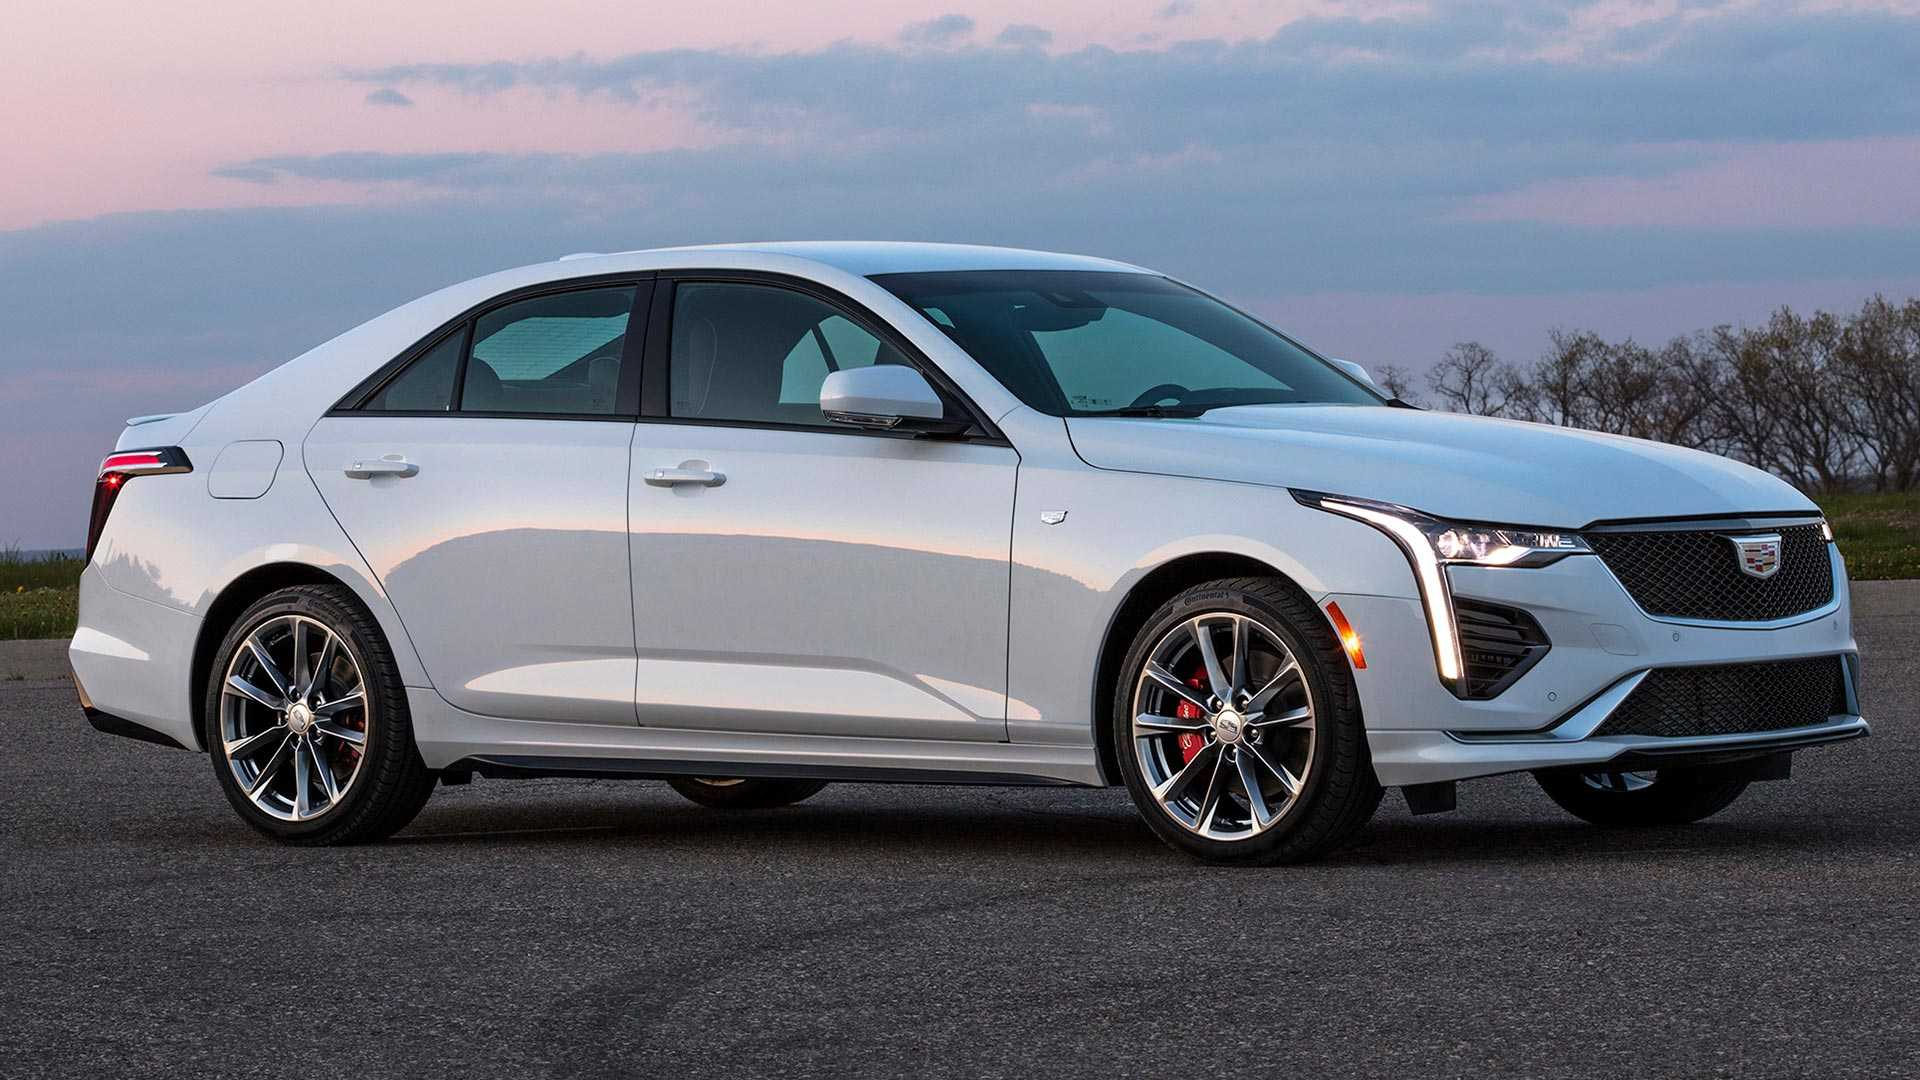 North American car manufacturer Cadillac has rolled out the 2020 update of its CT4 sedan/saloon. The available trim versions are Luxury, Luxury Premium, Sport, and CT4-V.